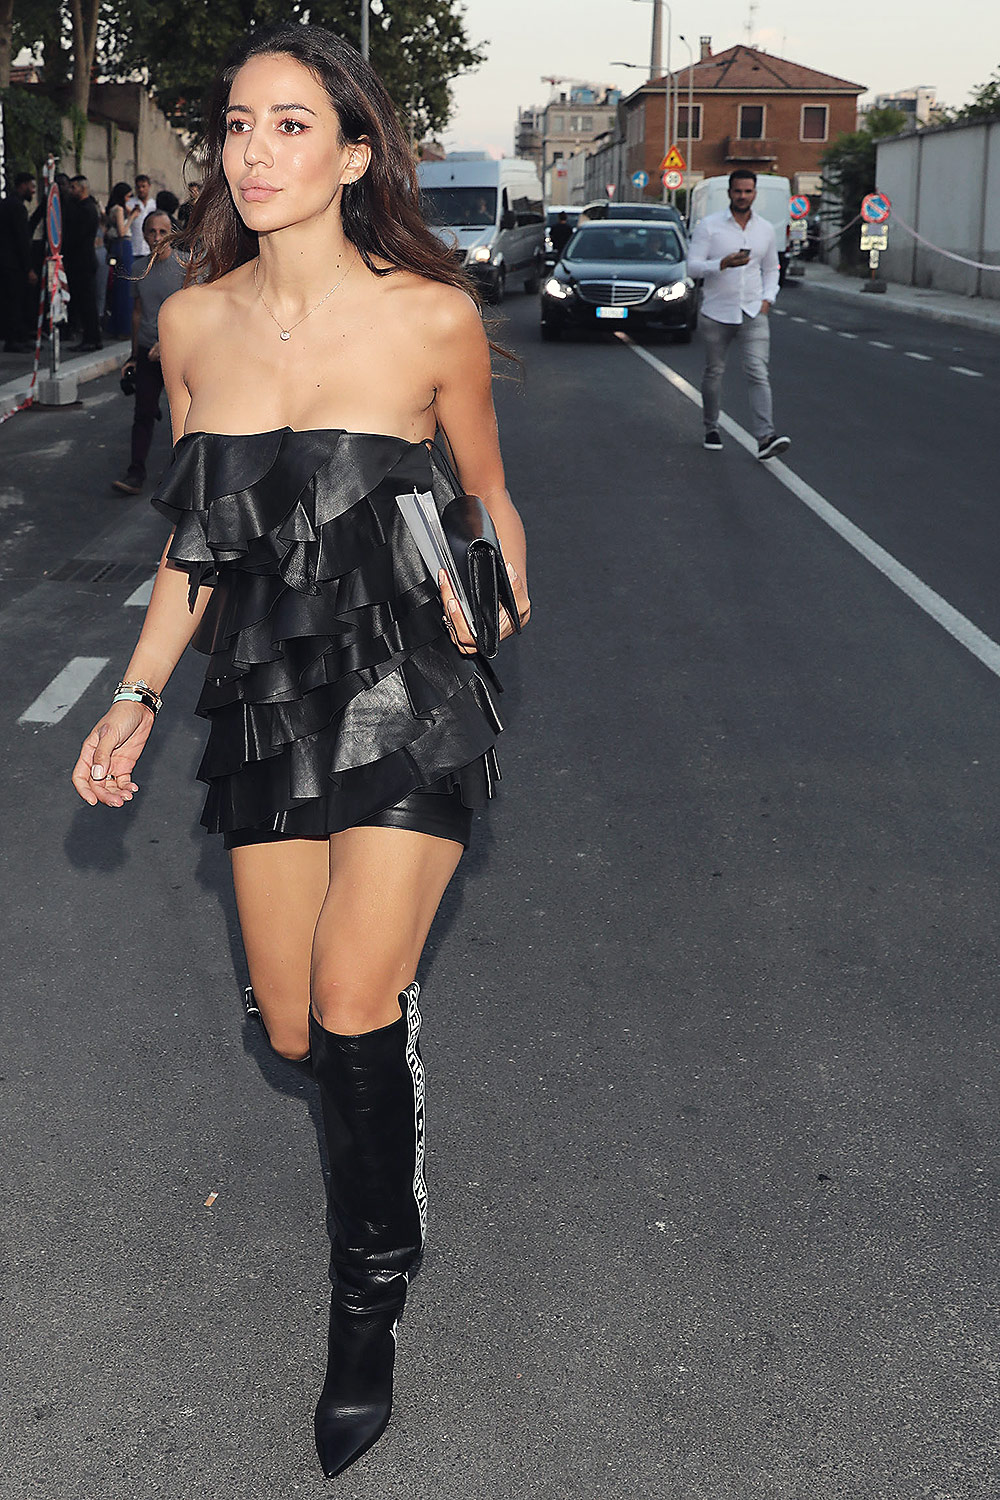 Tamara Kalinic arriving at Dsquared2 Spring/Summer 2019 Men's show